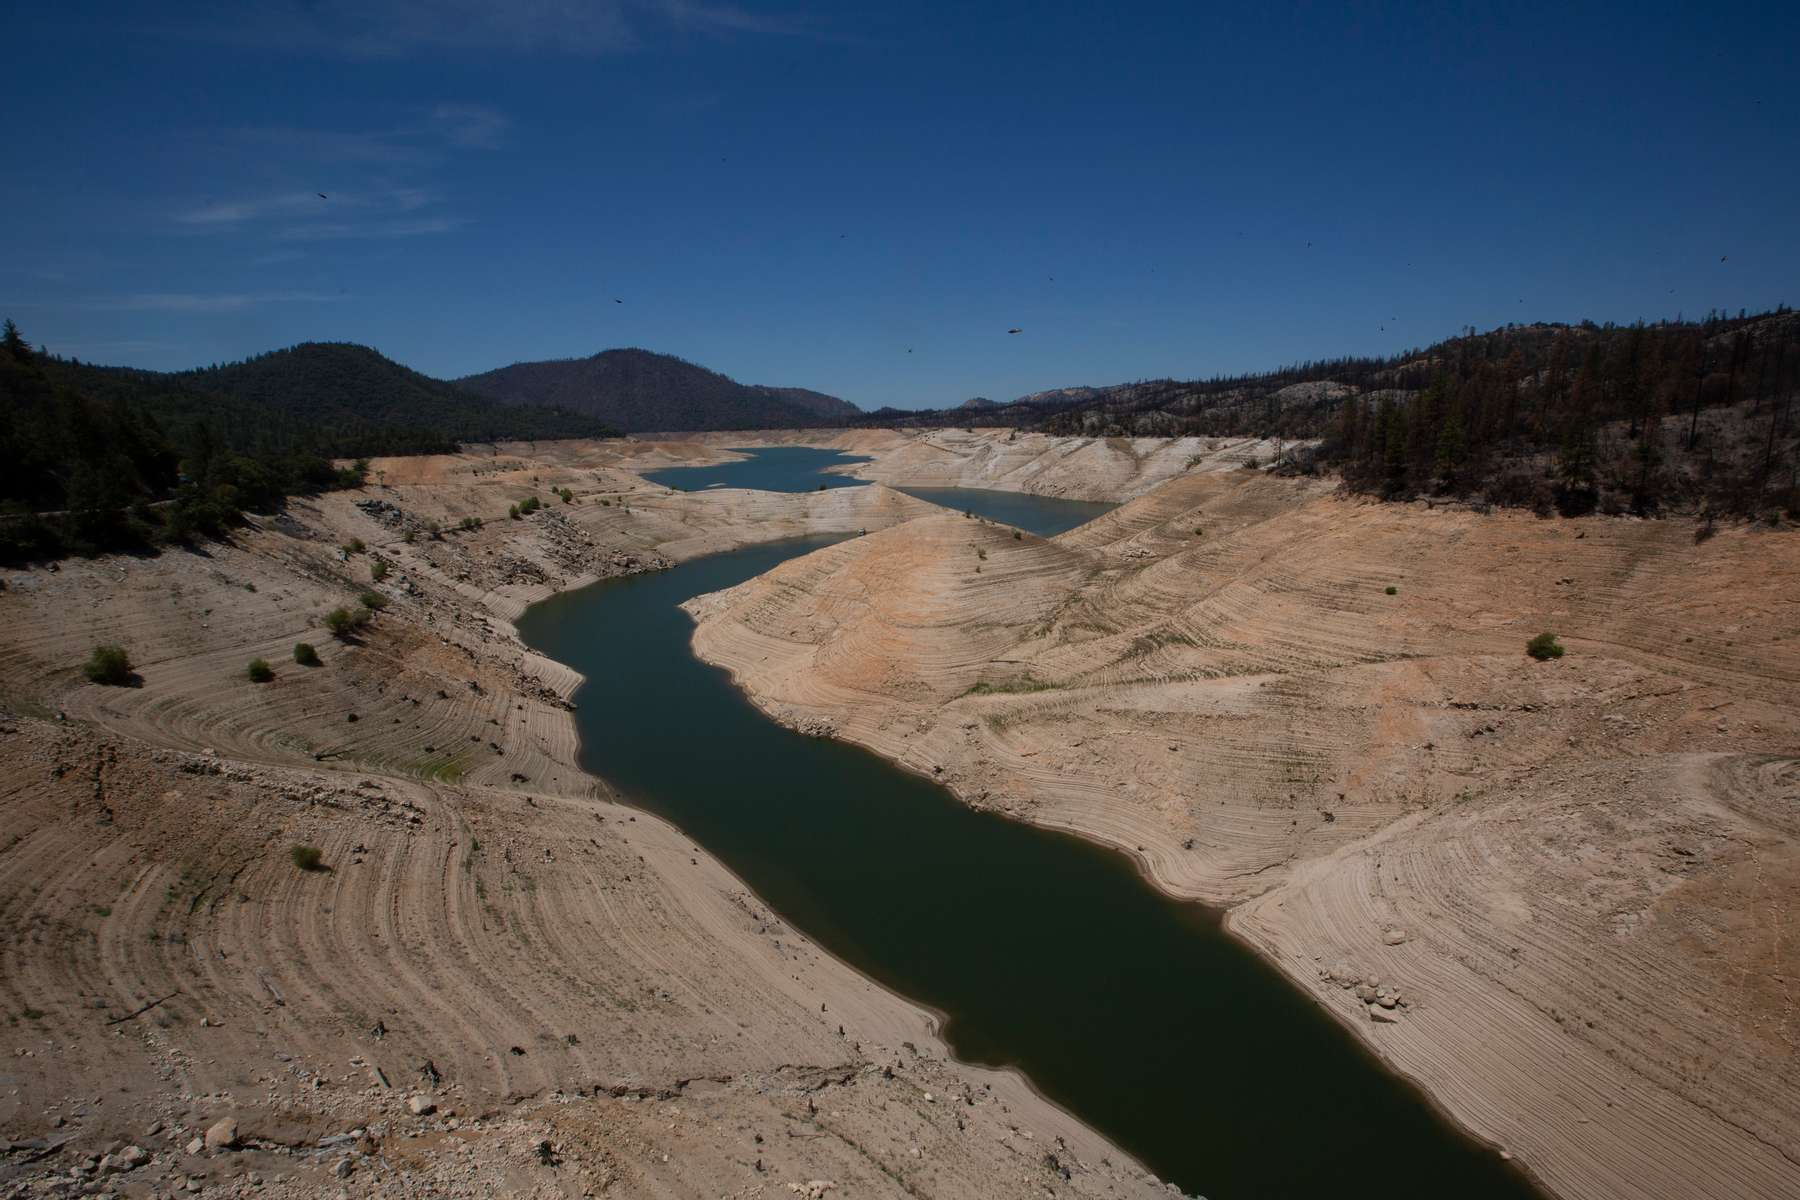 Low water levels are visible at Lake Oroville, which is the second largest reservoir in California and according to daily reports of the state's Department of Water Resources is near 35% capacity, near Oroville, California, U.S., June 16, 2021. Picture taken June 16, 2021.